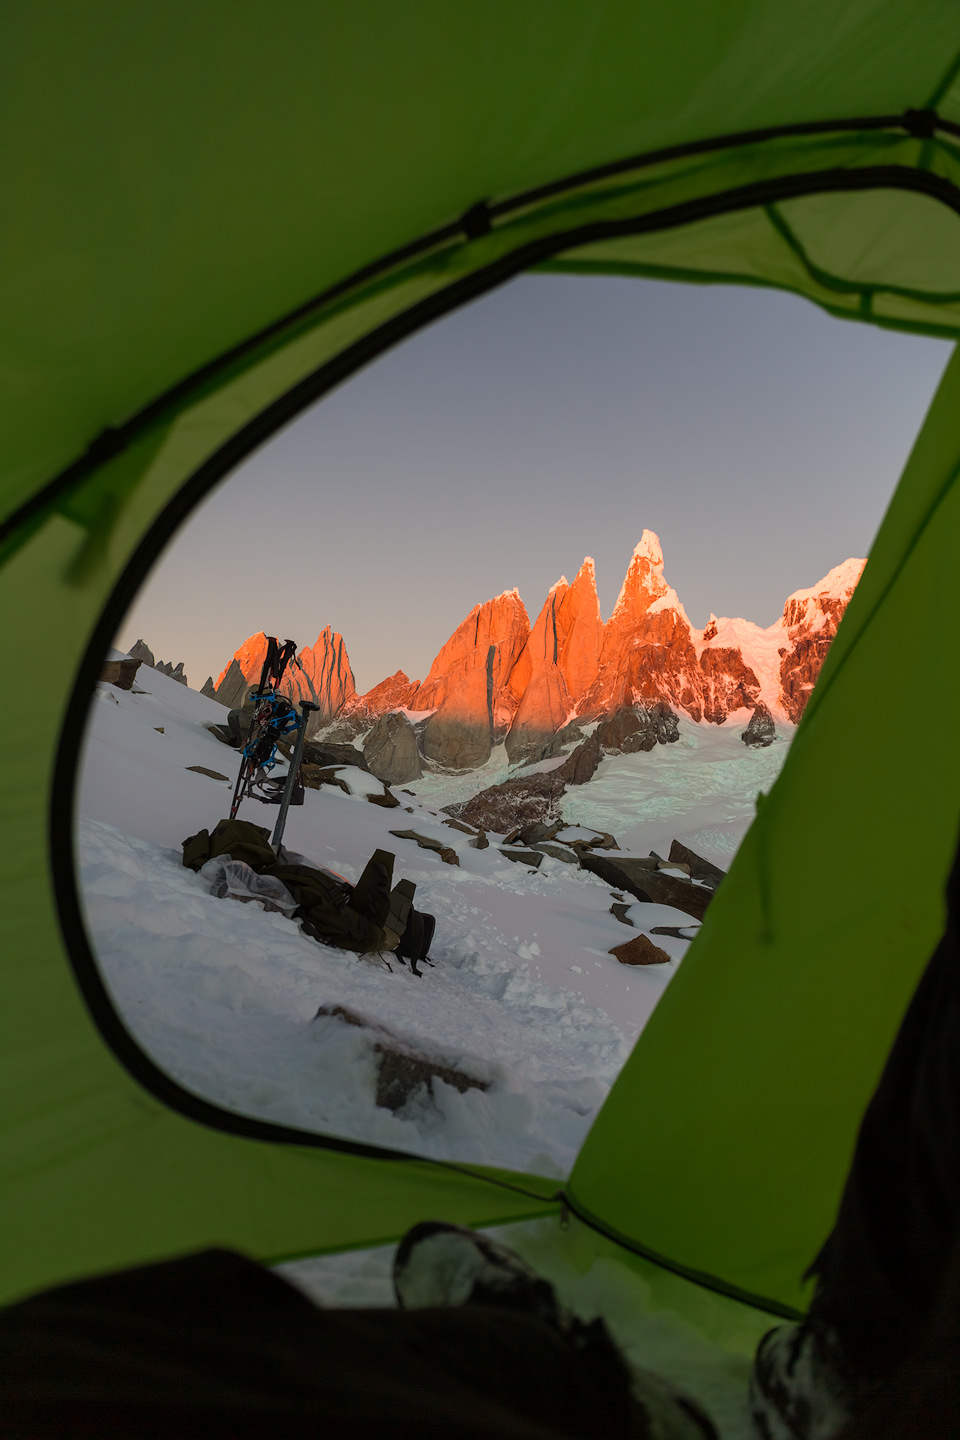 Cerro Torre seen from inside a tent